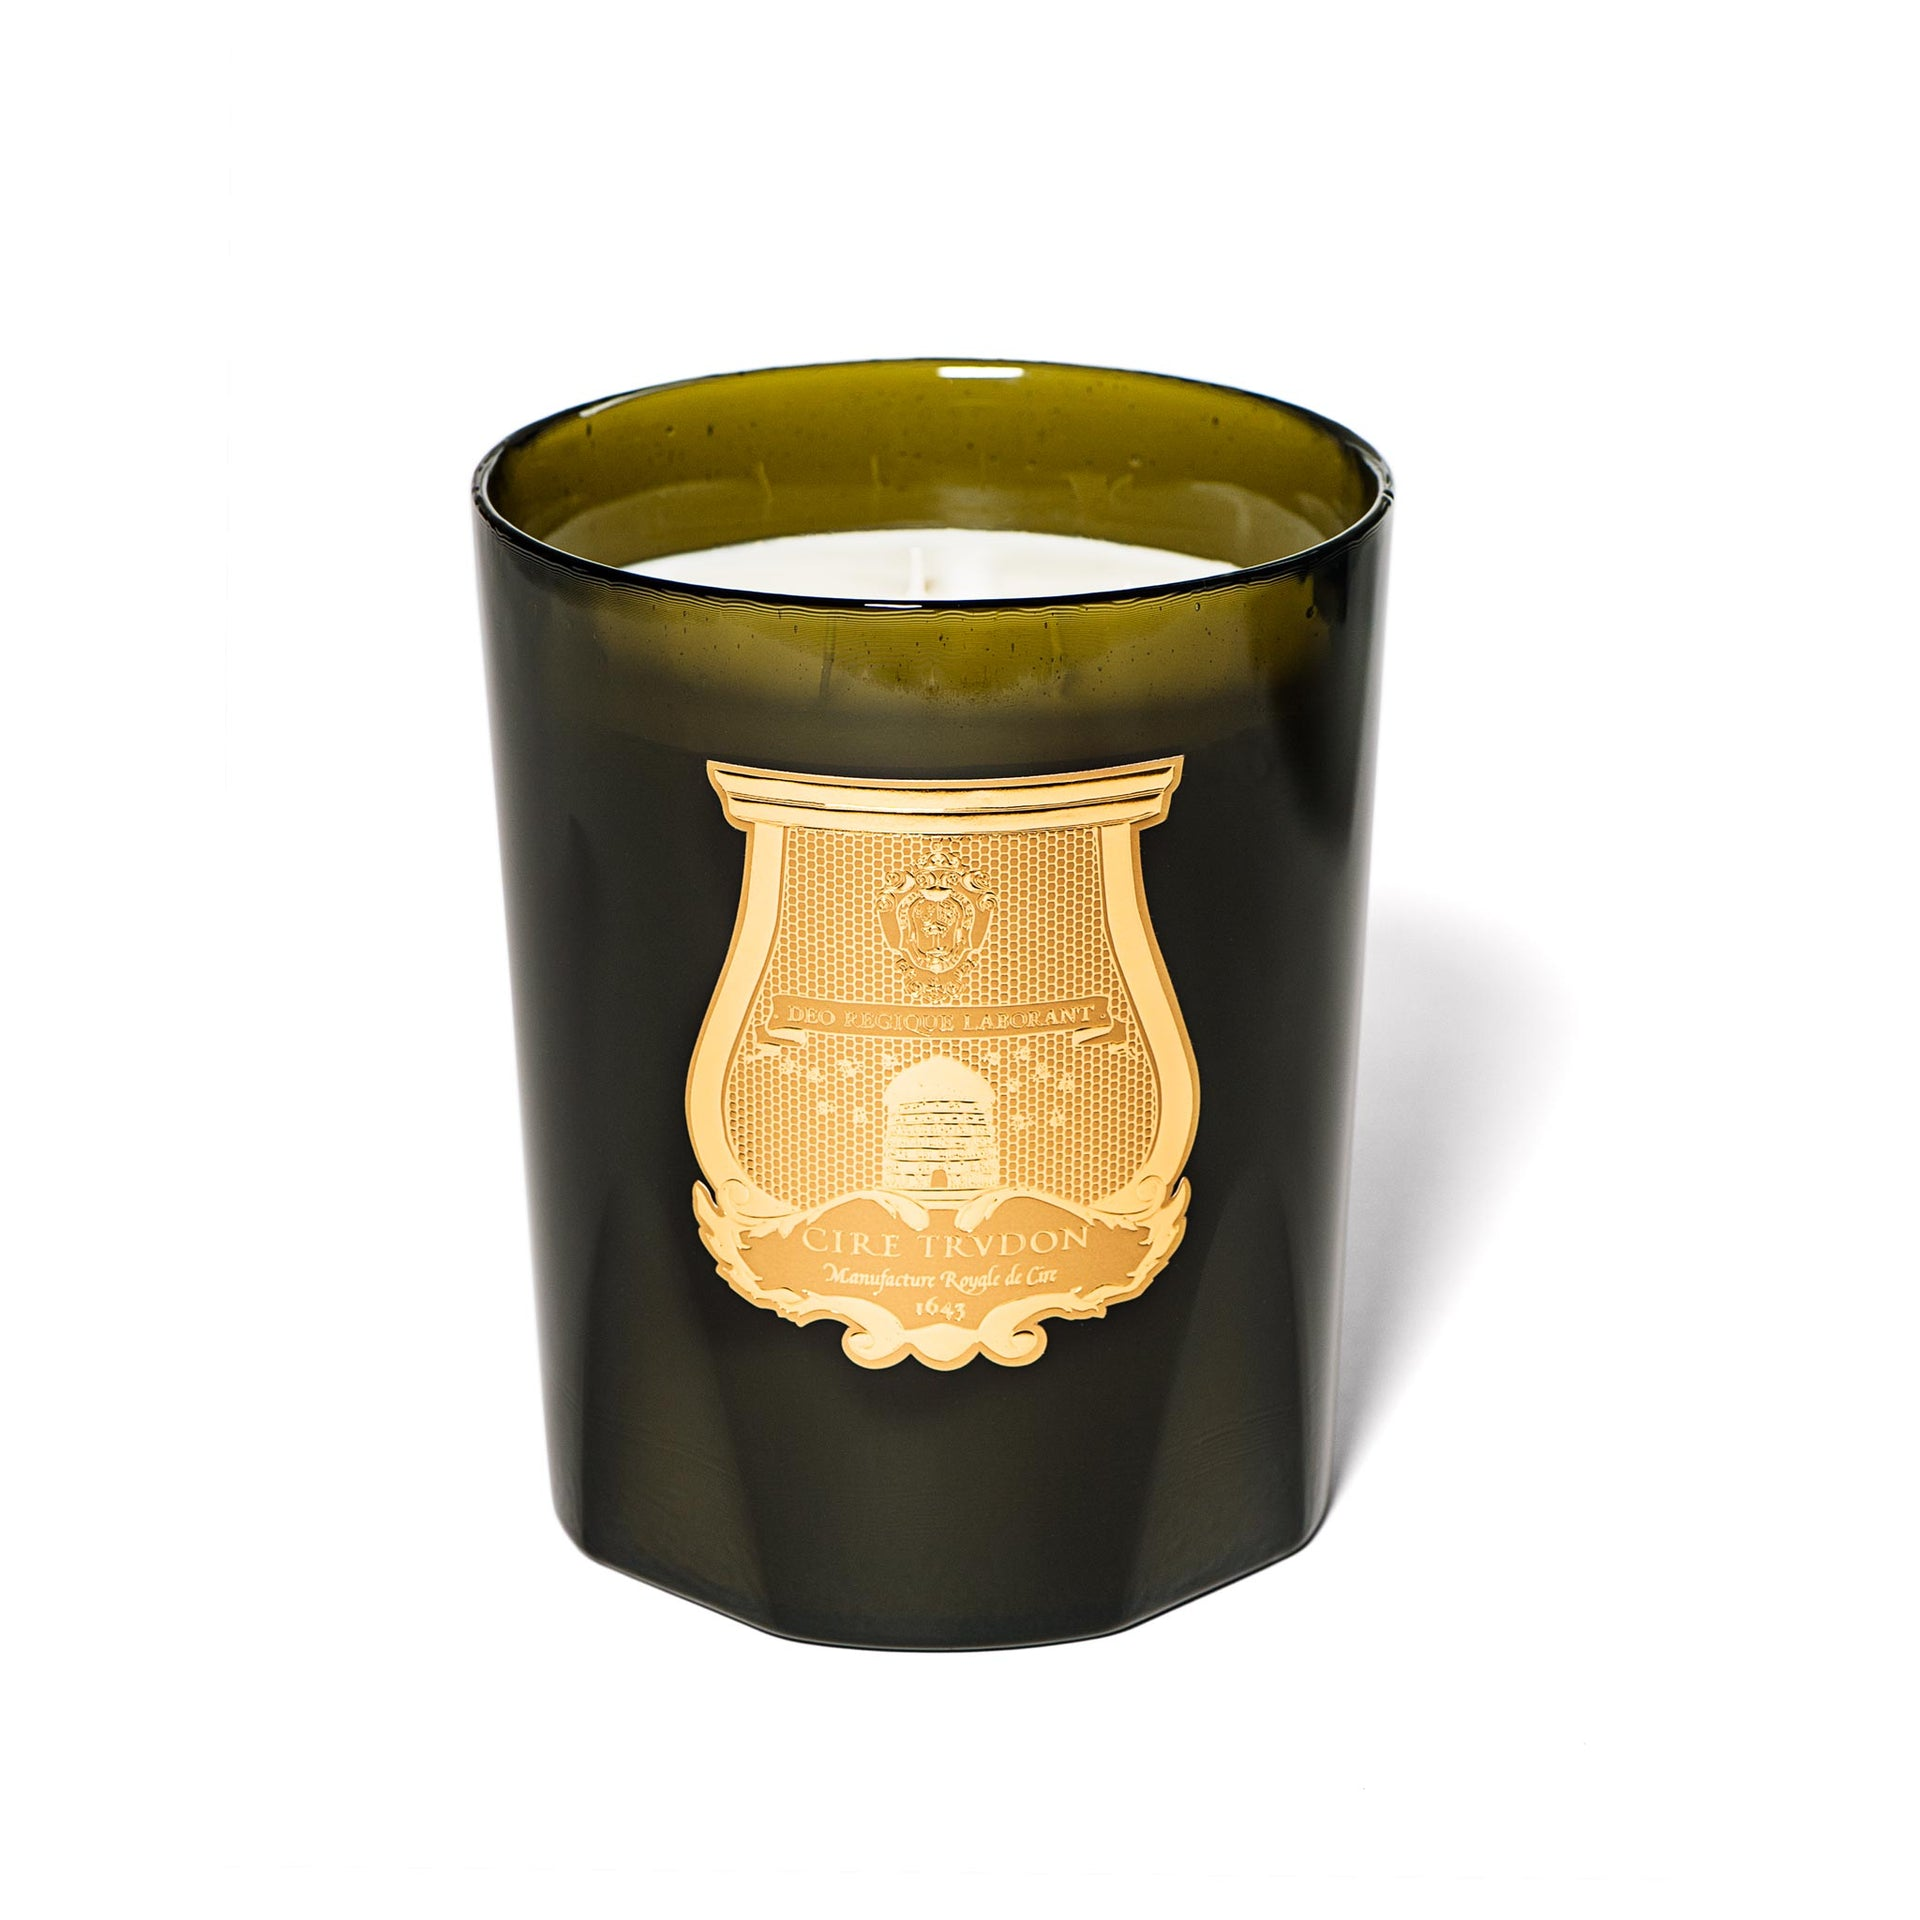 L'Admirable Candle 270g